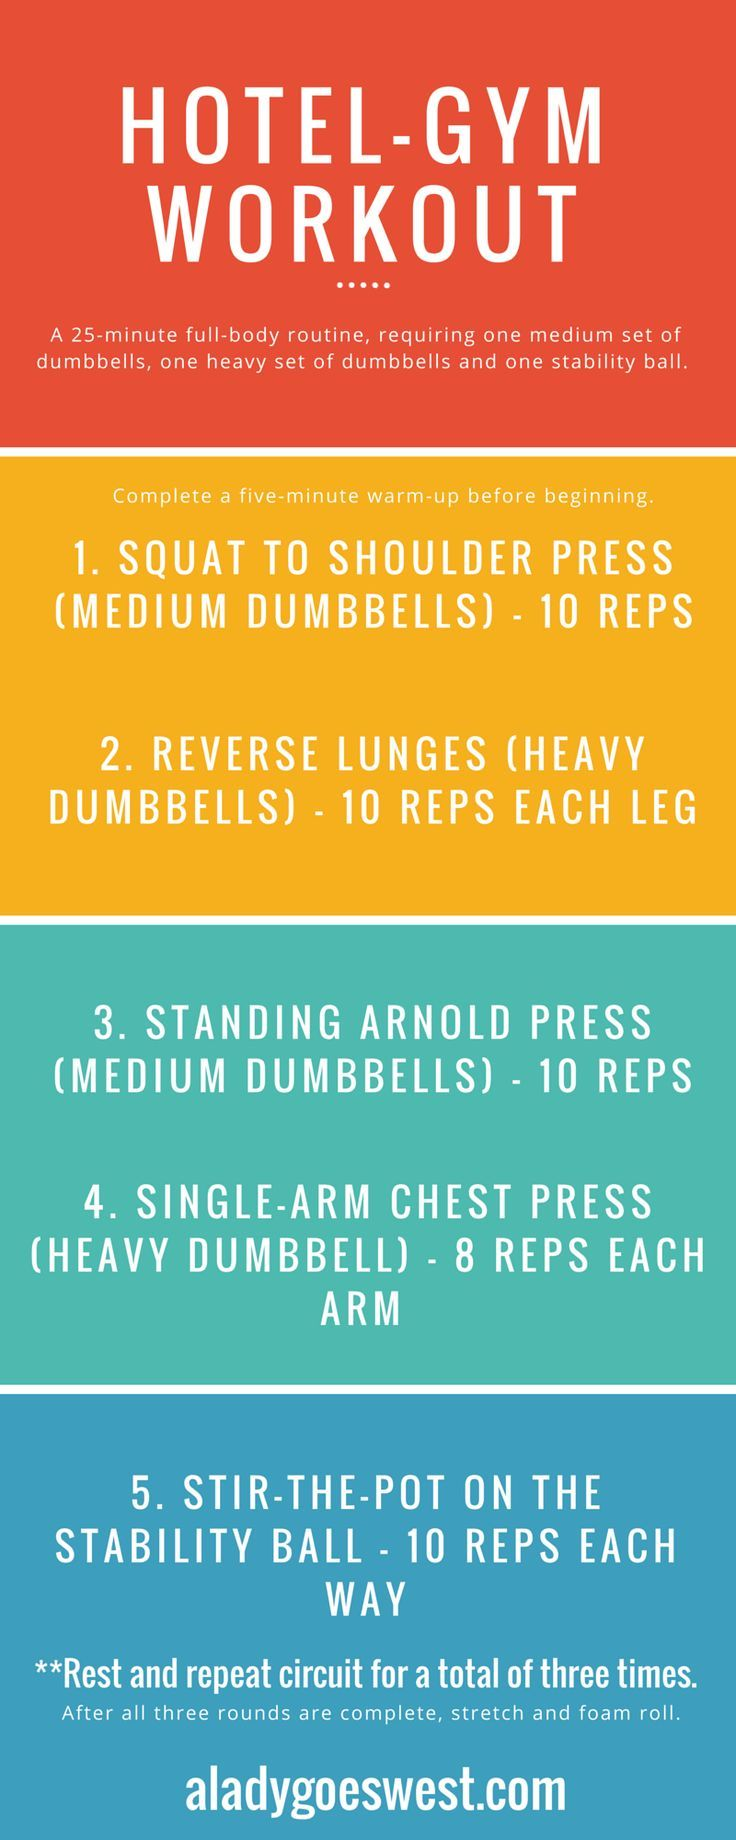 A short-on-time hotel-gym dumbbell workout | A Lady Goes West #dumbbellworkout